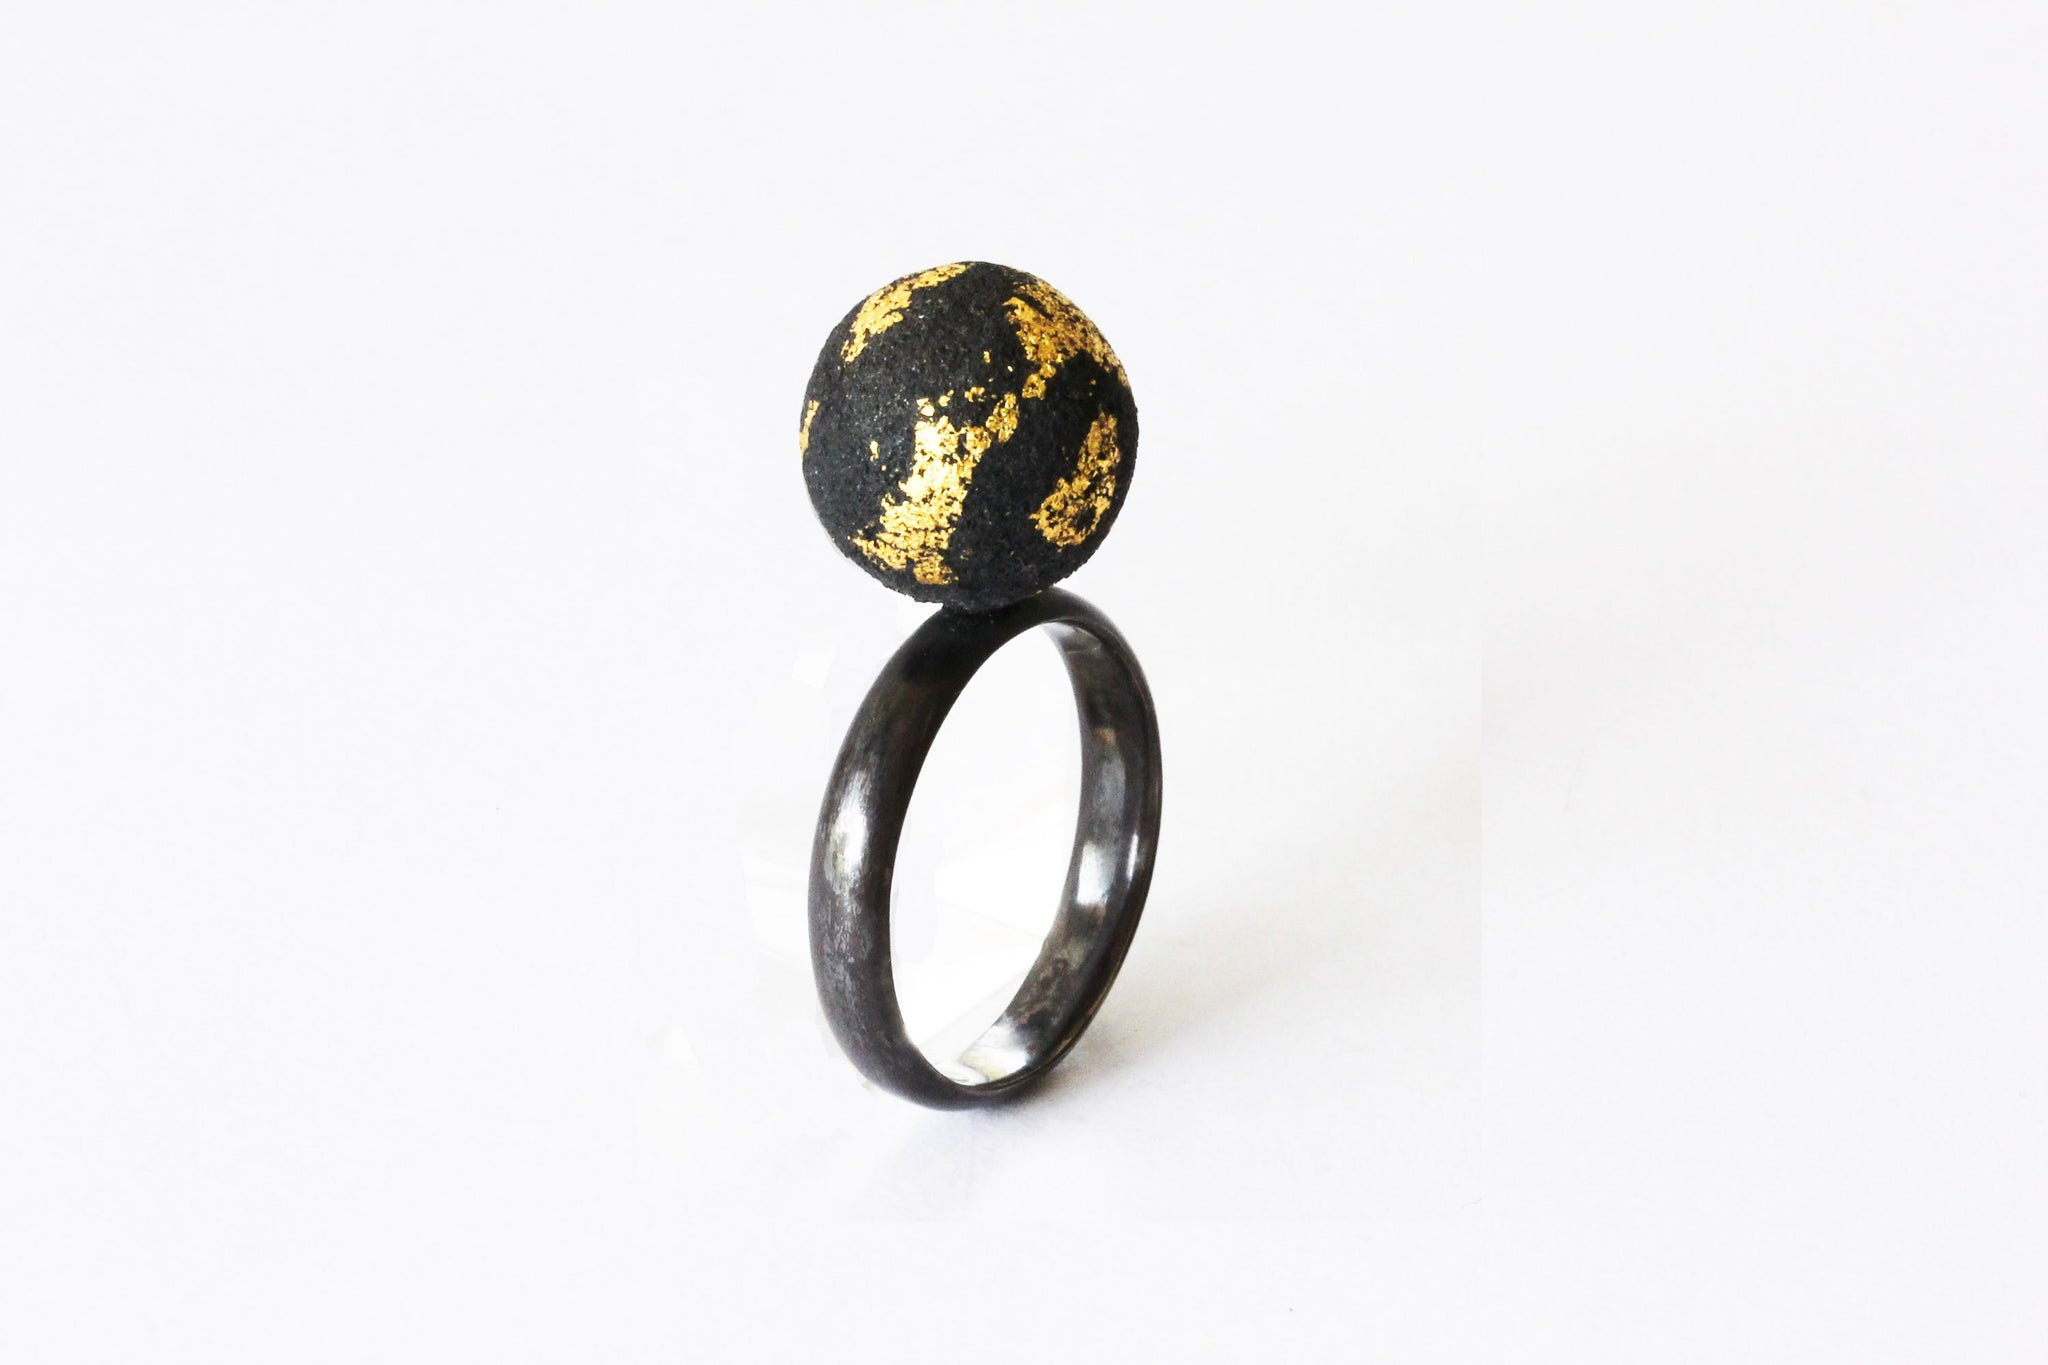 Oxidized Silver and Gold Foil Ring - Lesetta